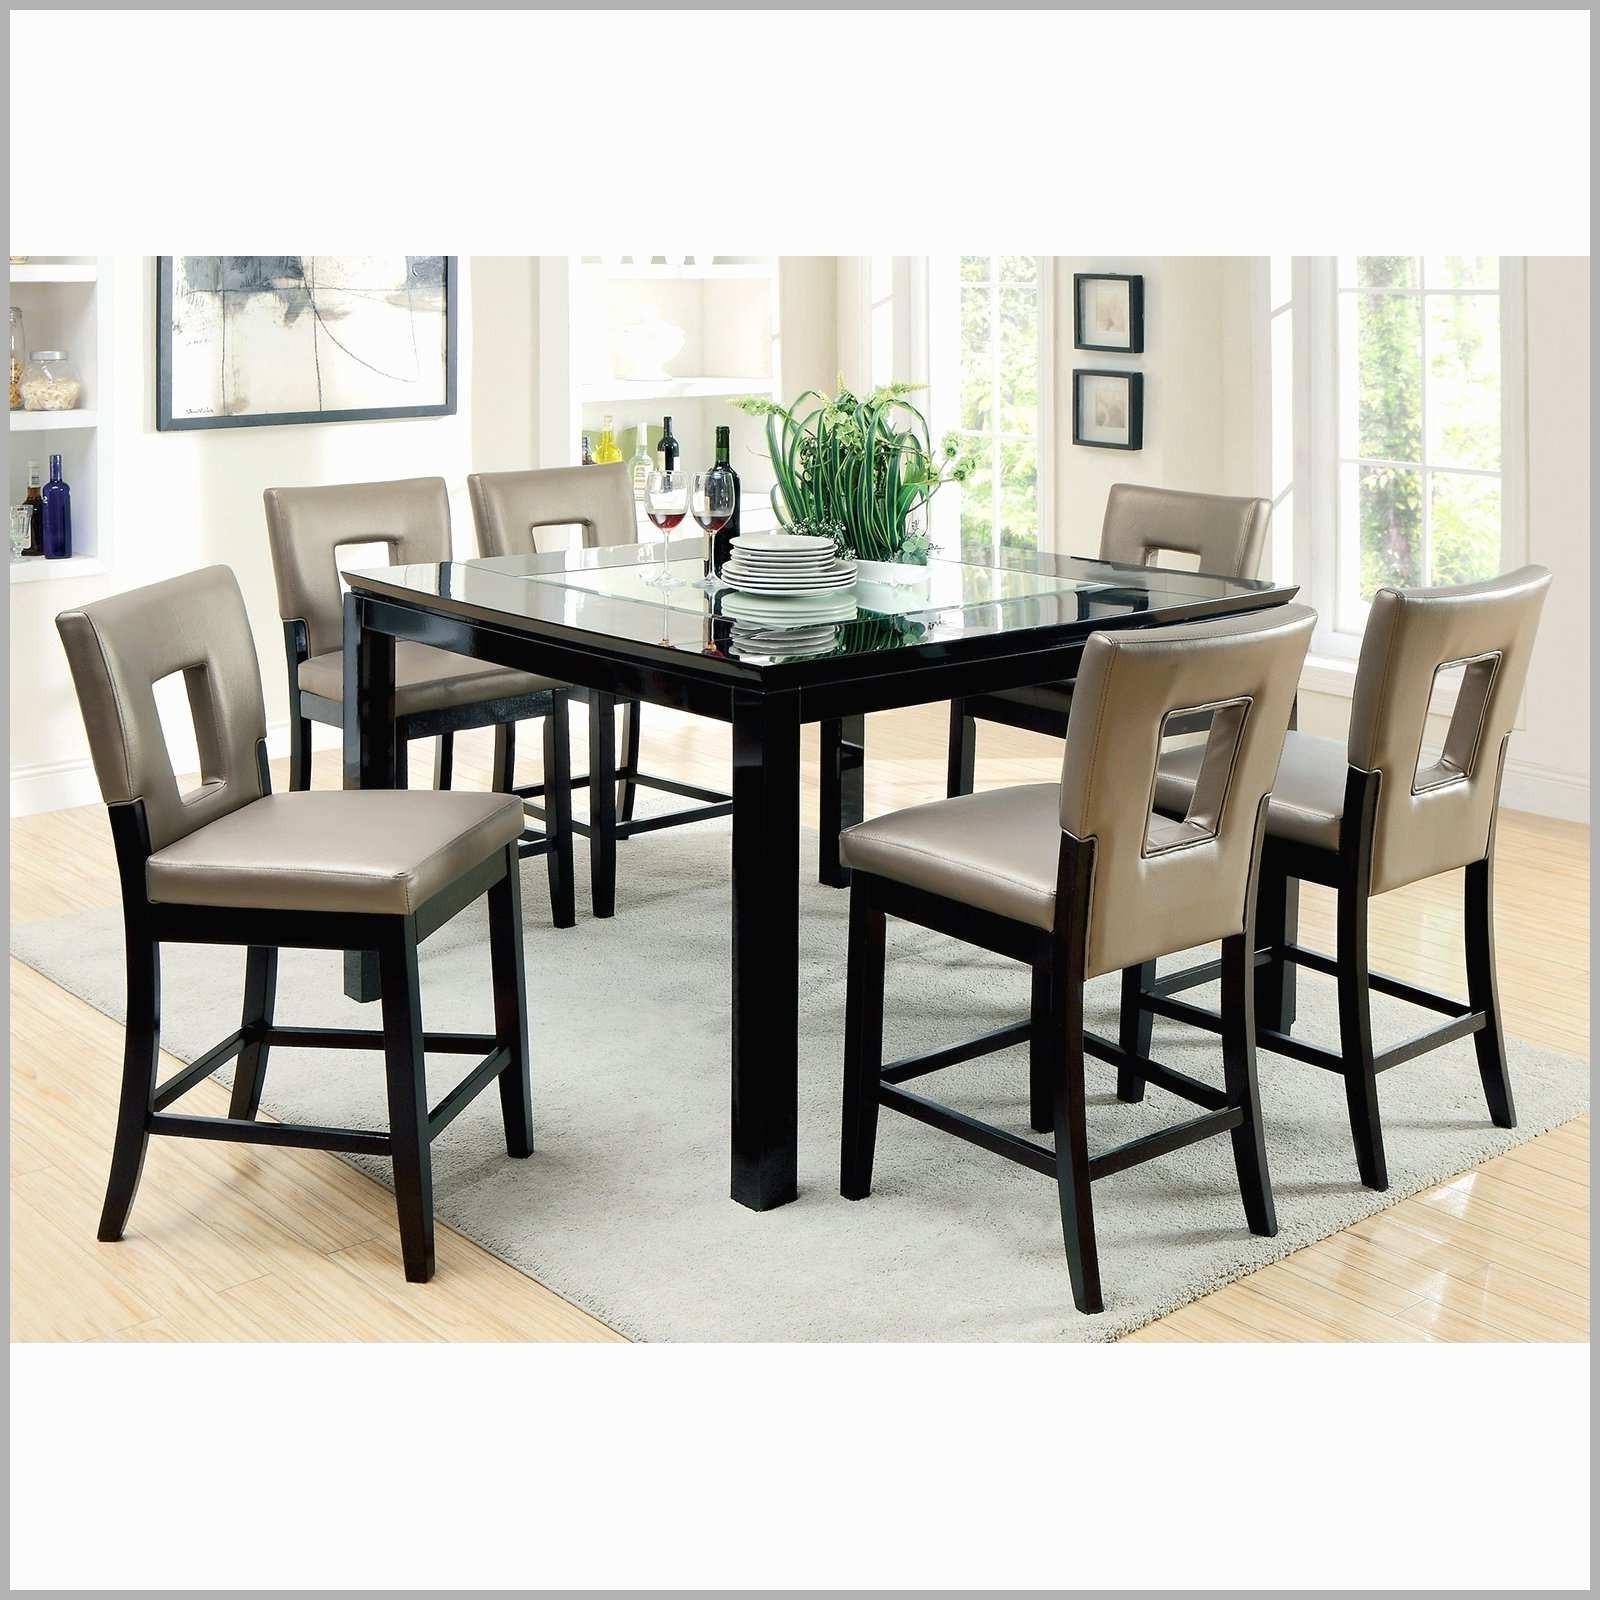 8 Seater Dining Table Sets With Regard To Well Liked White High Gloss Extending Dining Table Luxury 8 Seater Dining Table (View 15 of 25)